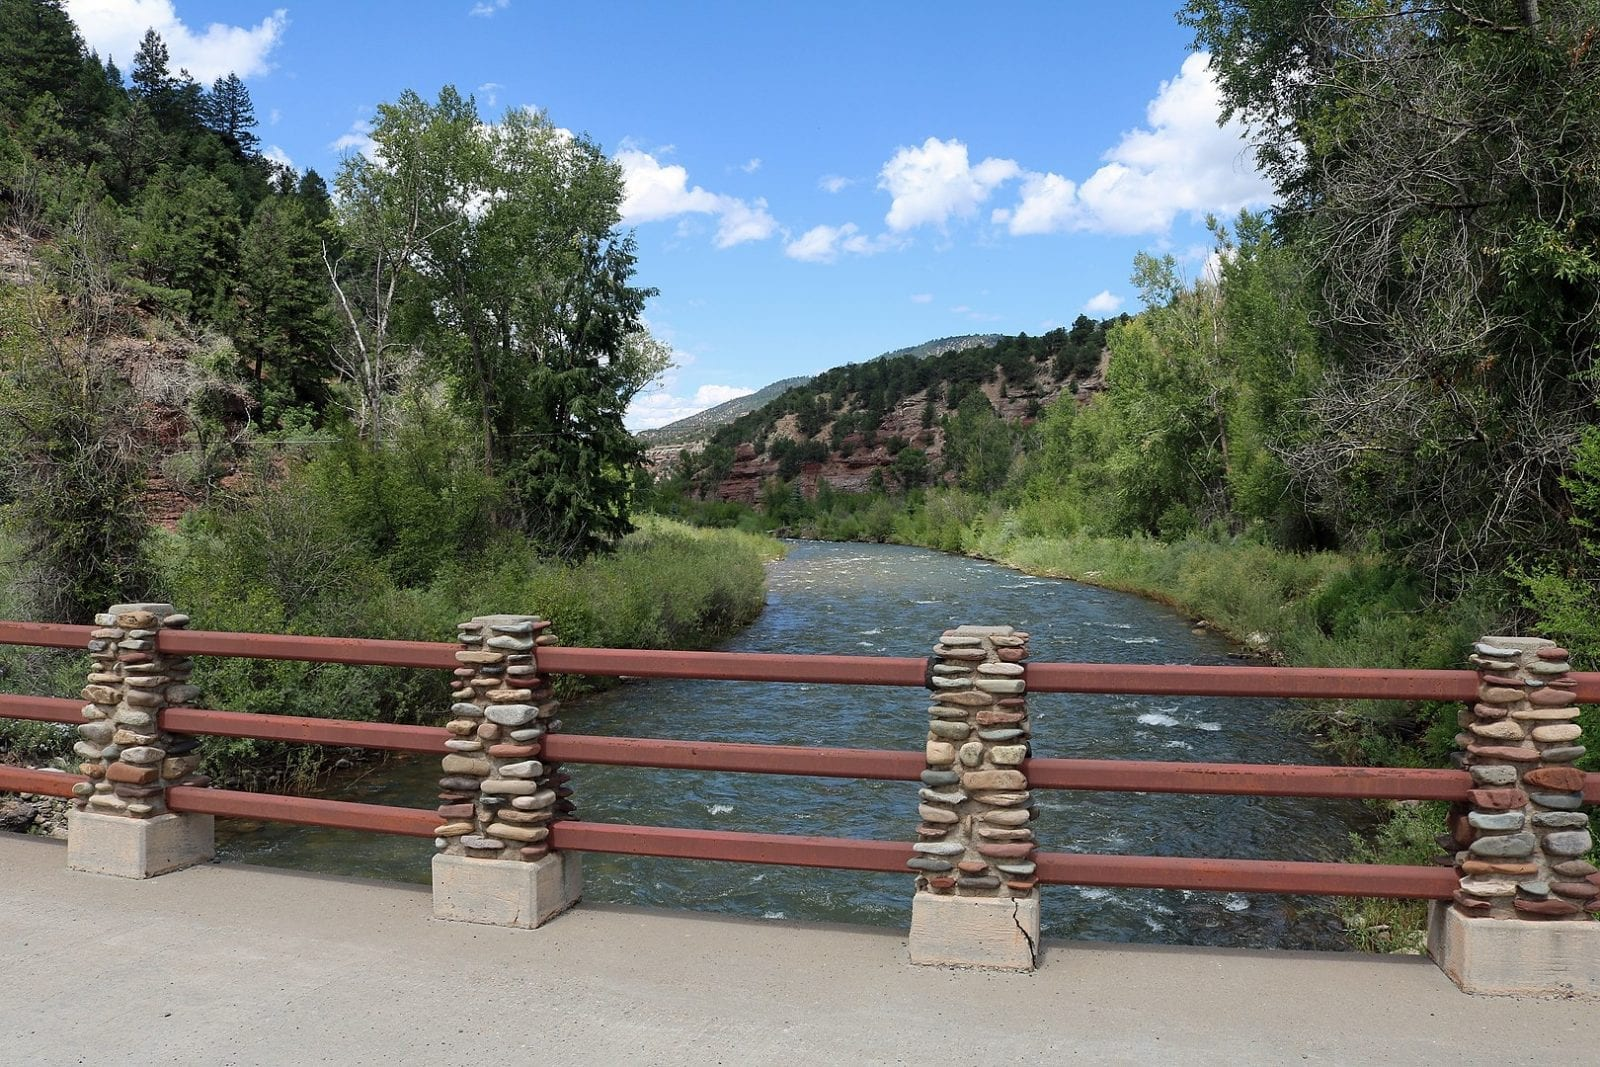 Image of the San Miguel River in Placerville in Colorado